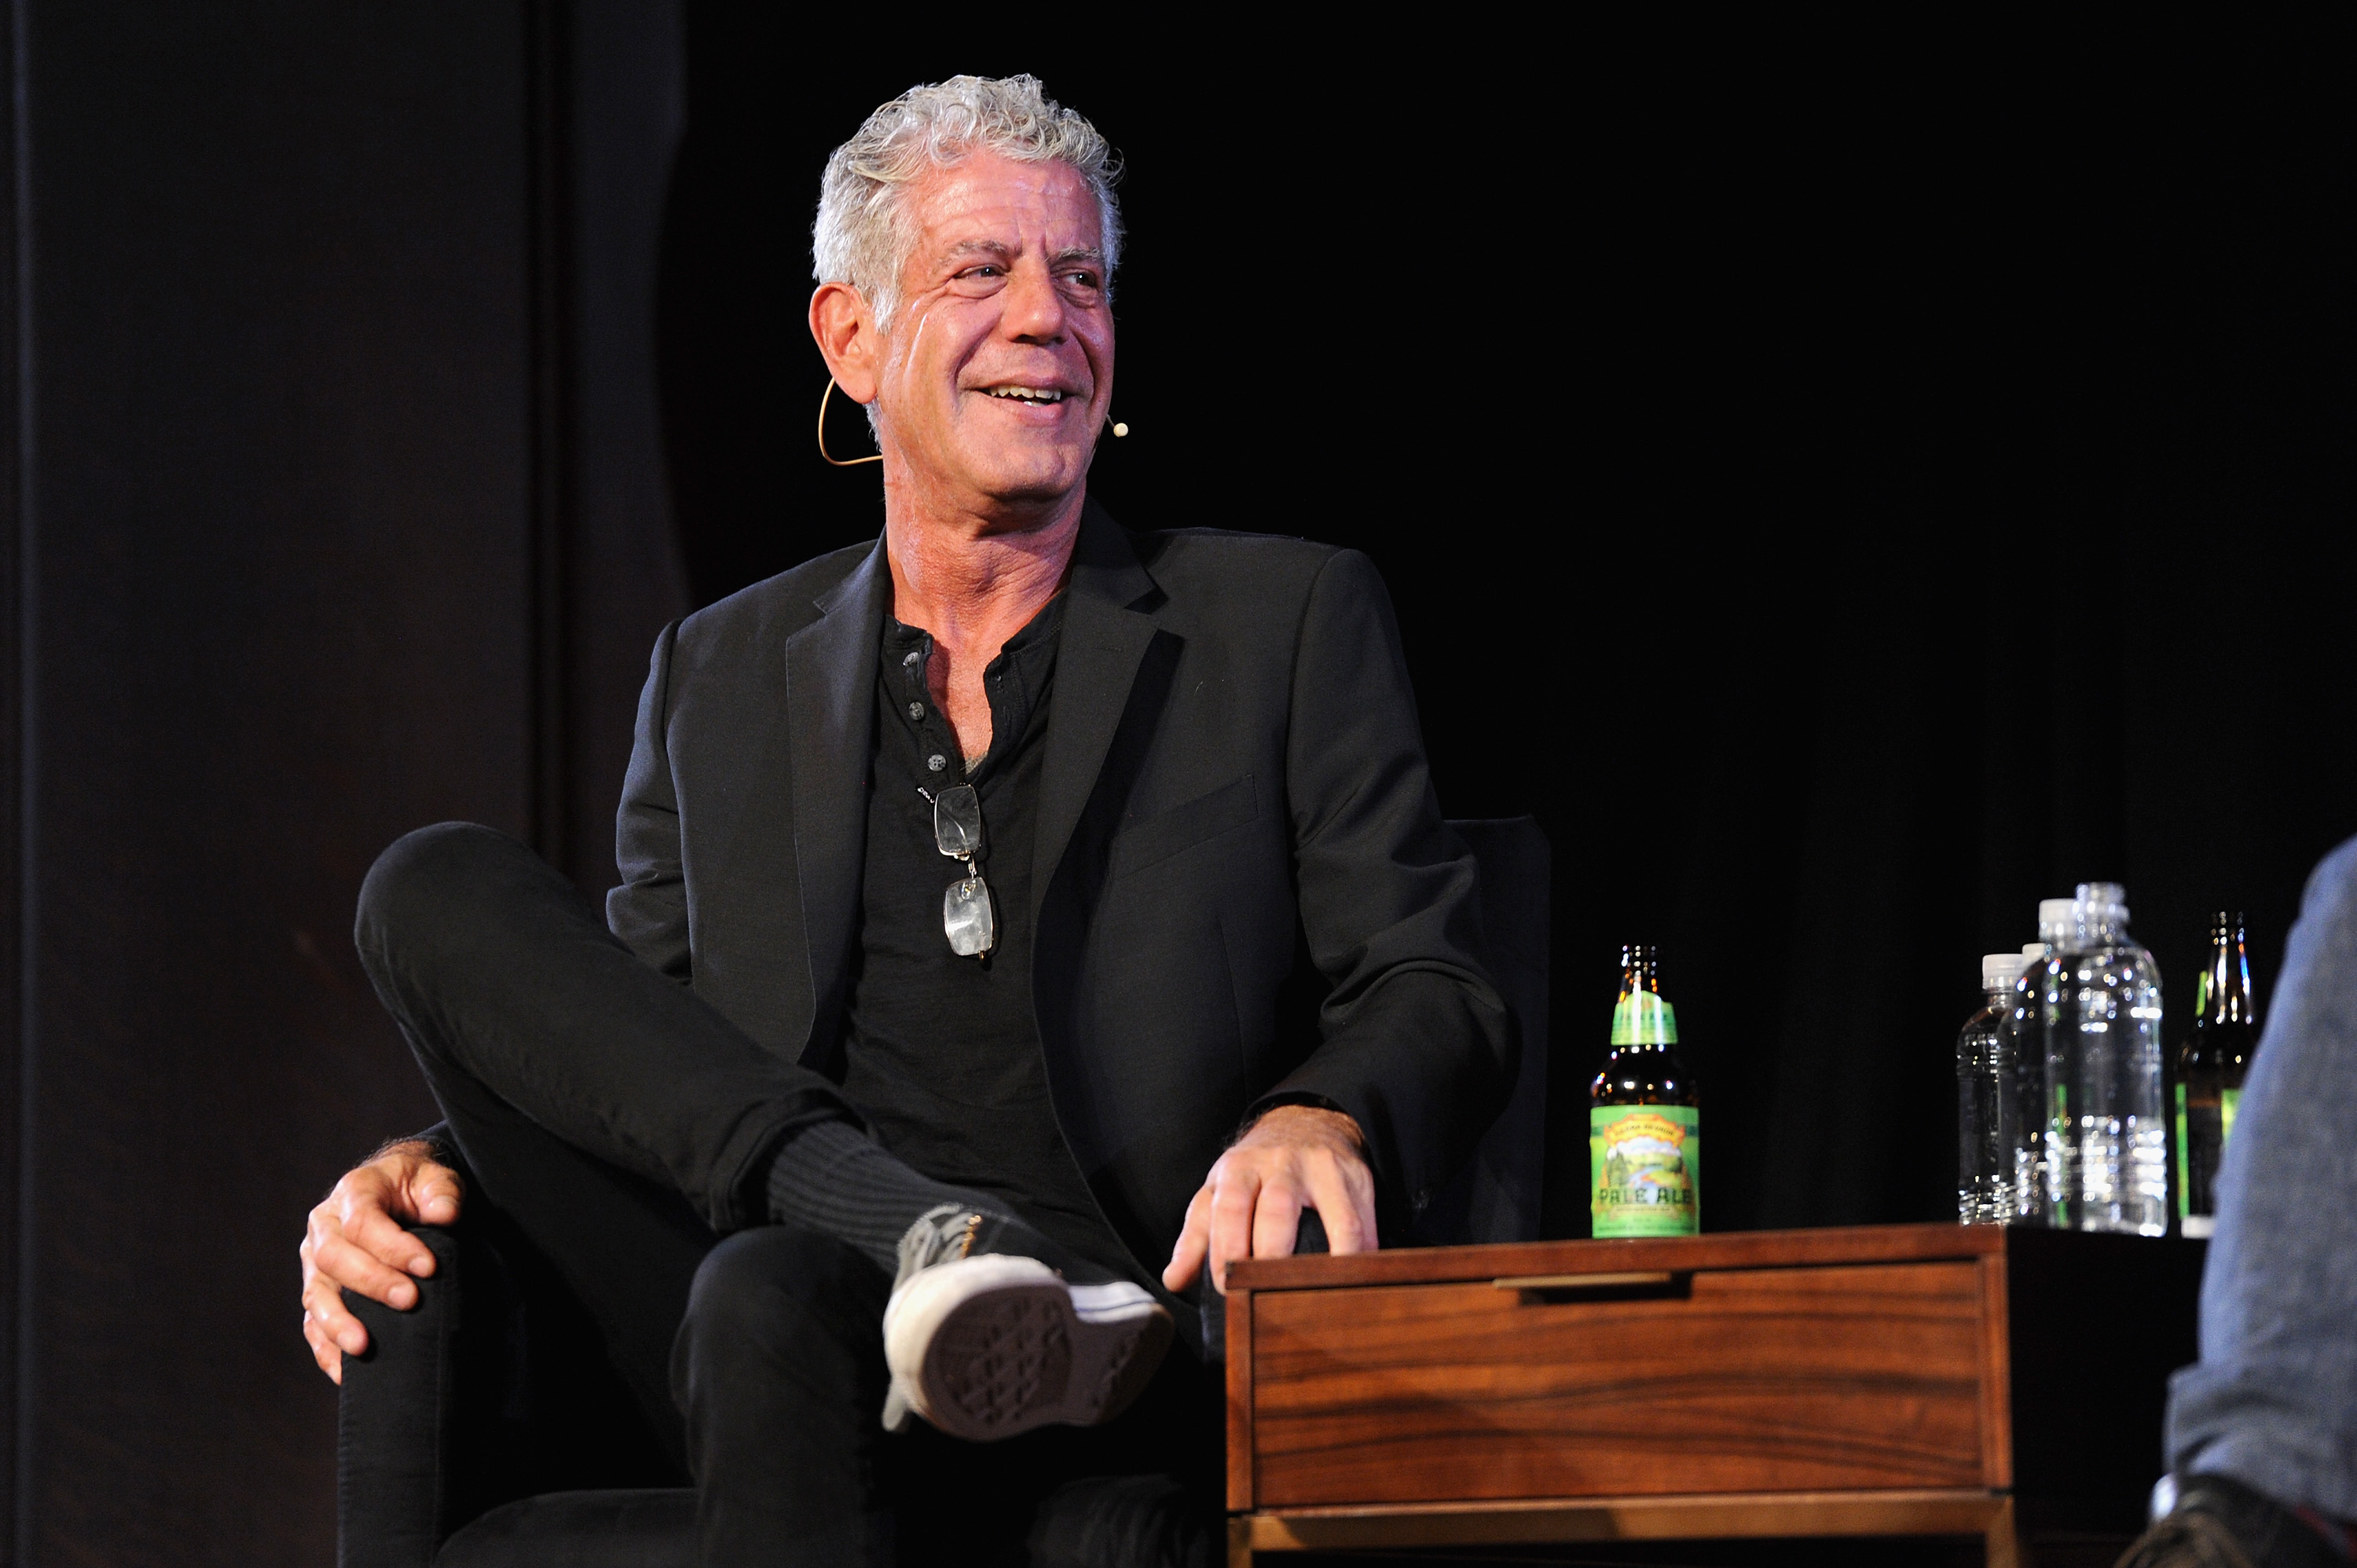 Chef Anthony Bourdain speaks onstage during the panel Anthony Bourdain talks with Patrick Radden Keefe at New York Society for Ethical Culture on October 7, 2017 in New York City. (Photo by Craig Barritt/Getty Images for The New Yorker)